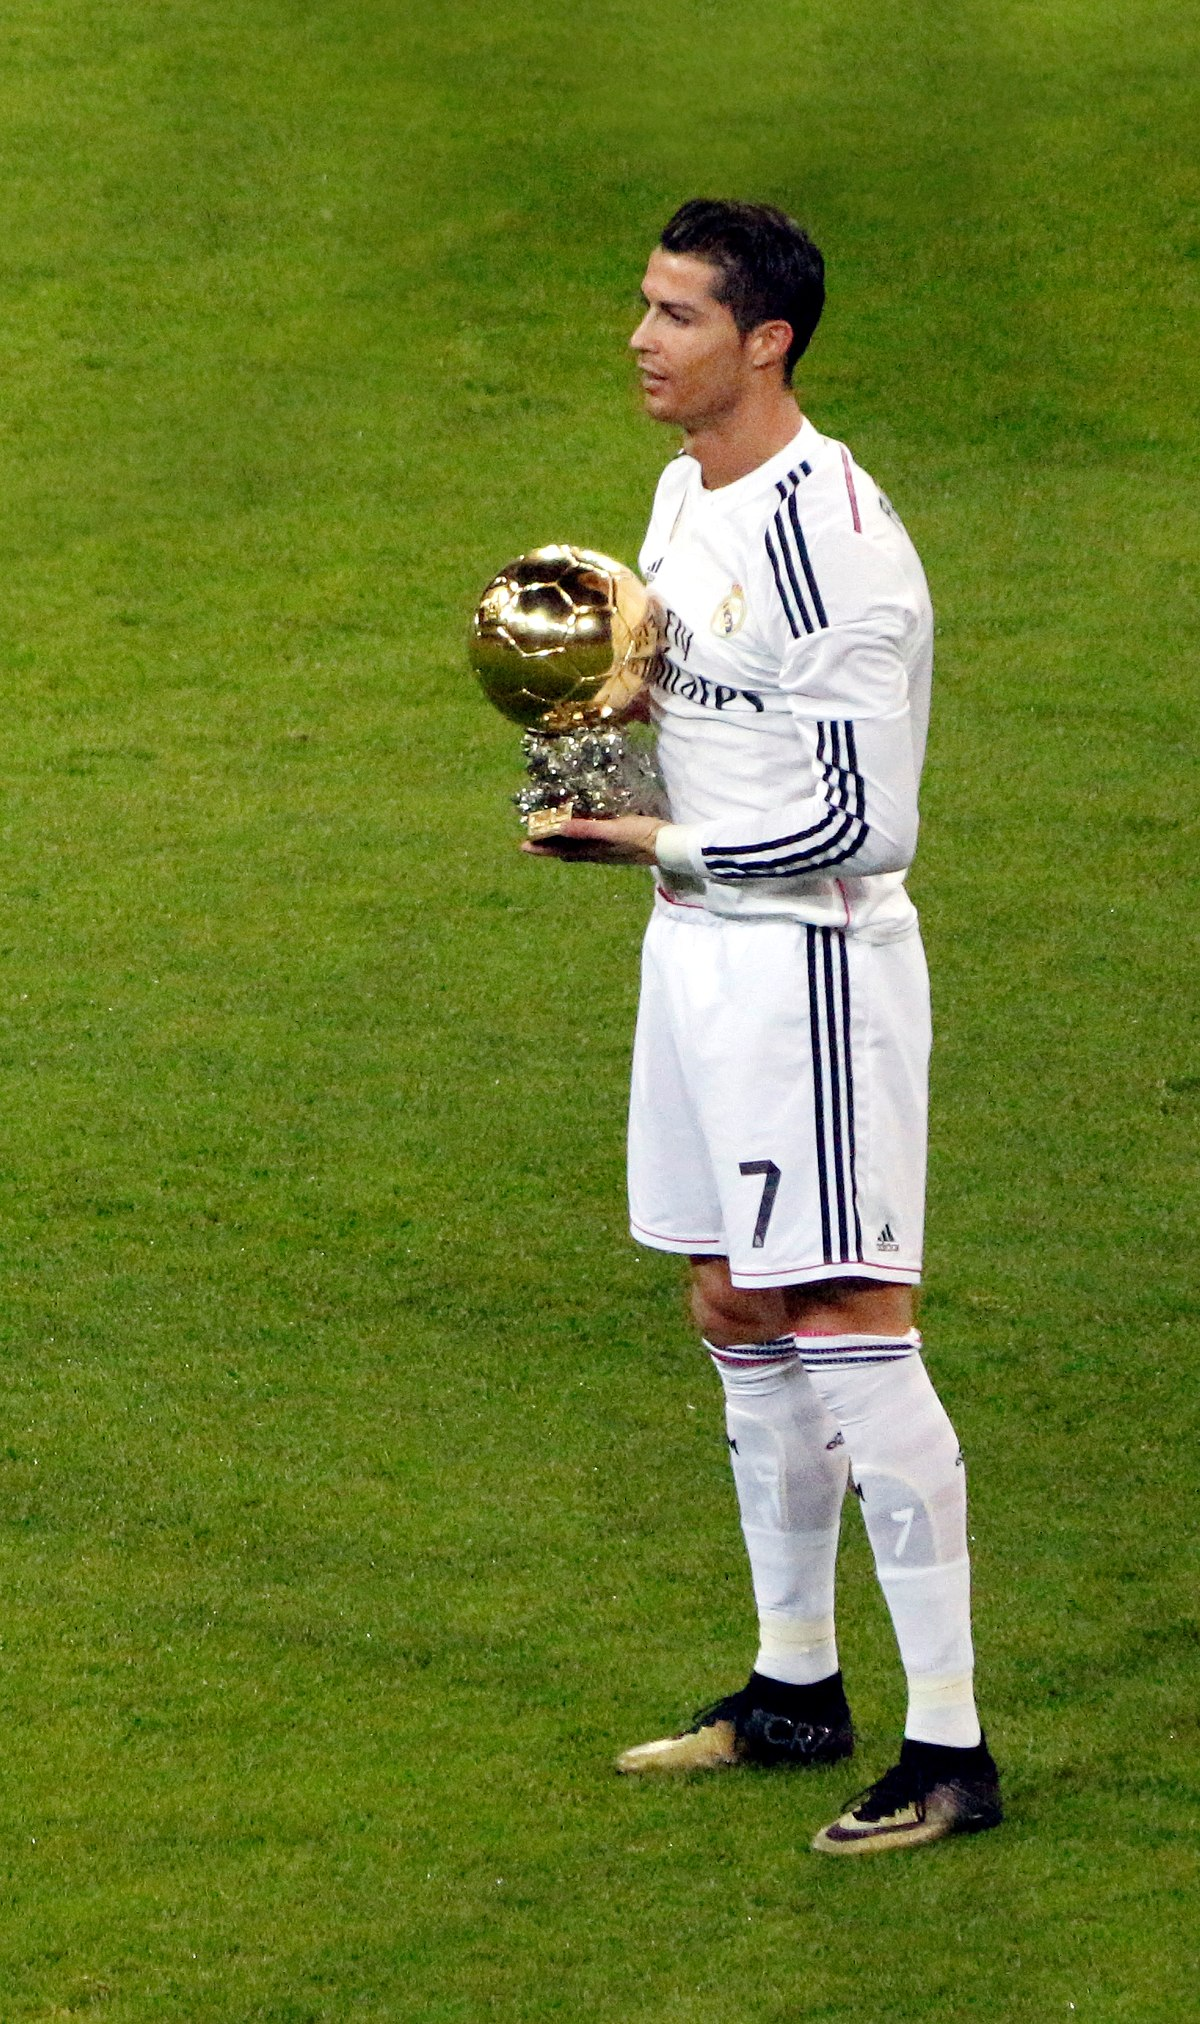 List of career achievements by Cristiano Ronaldo - Wikipedia c58f5ccac00